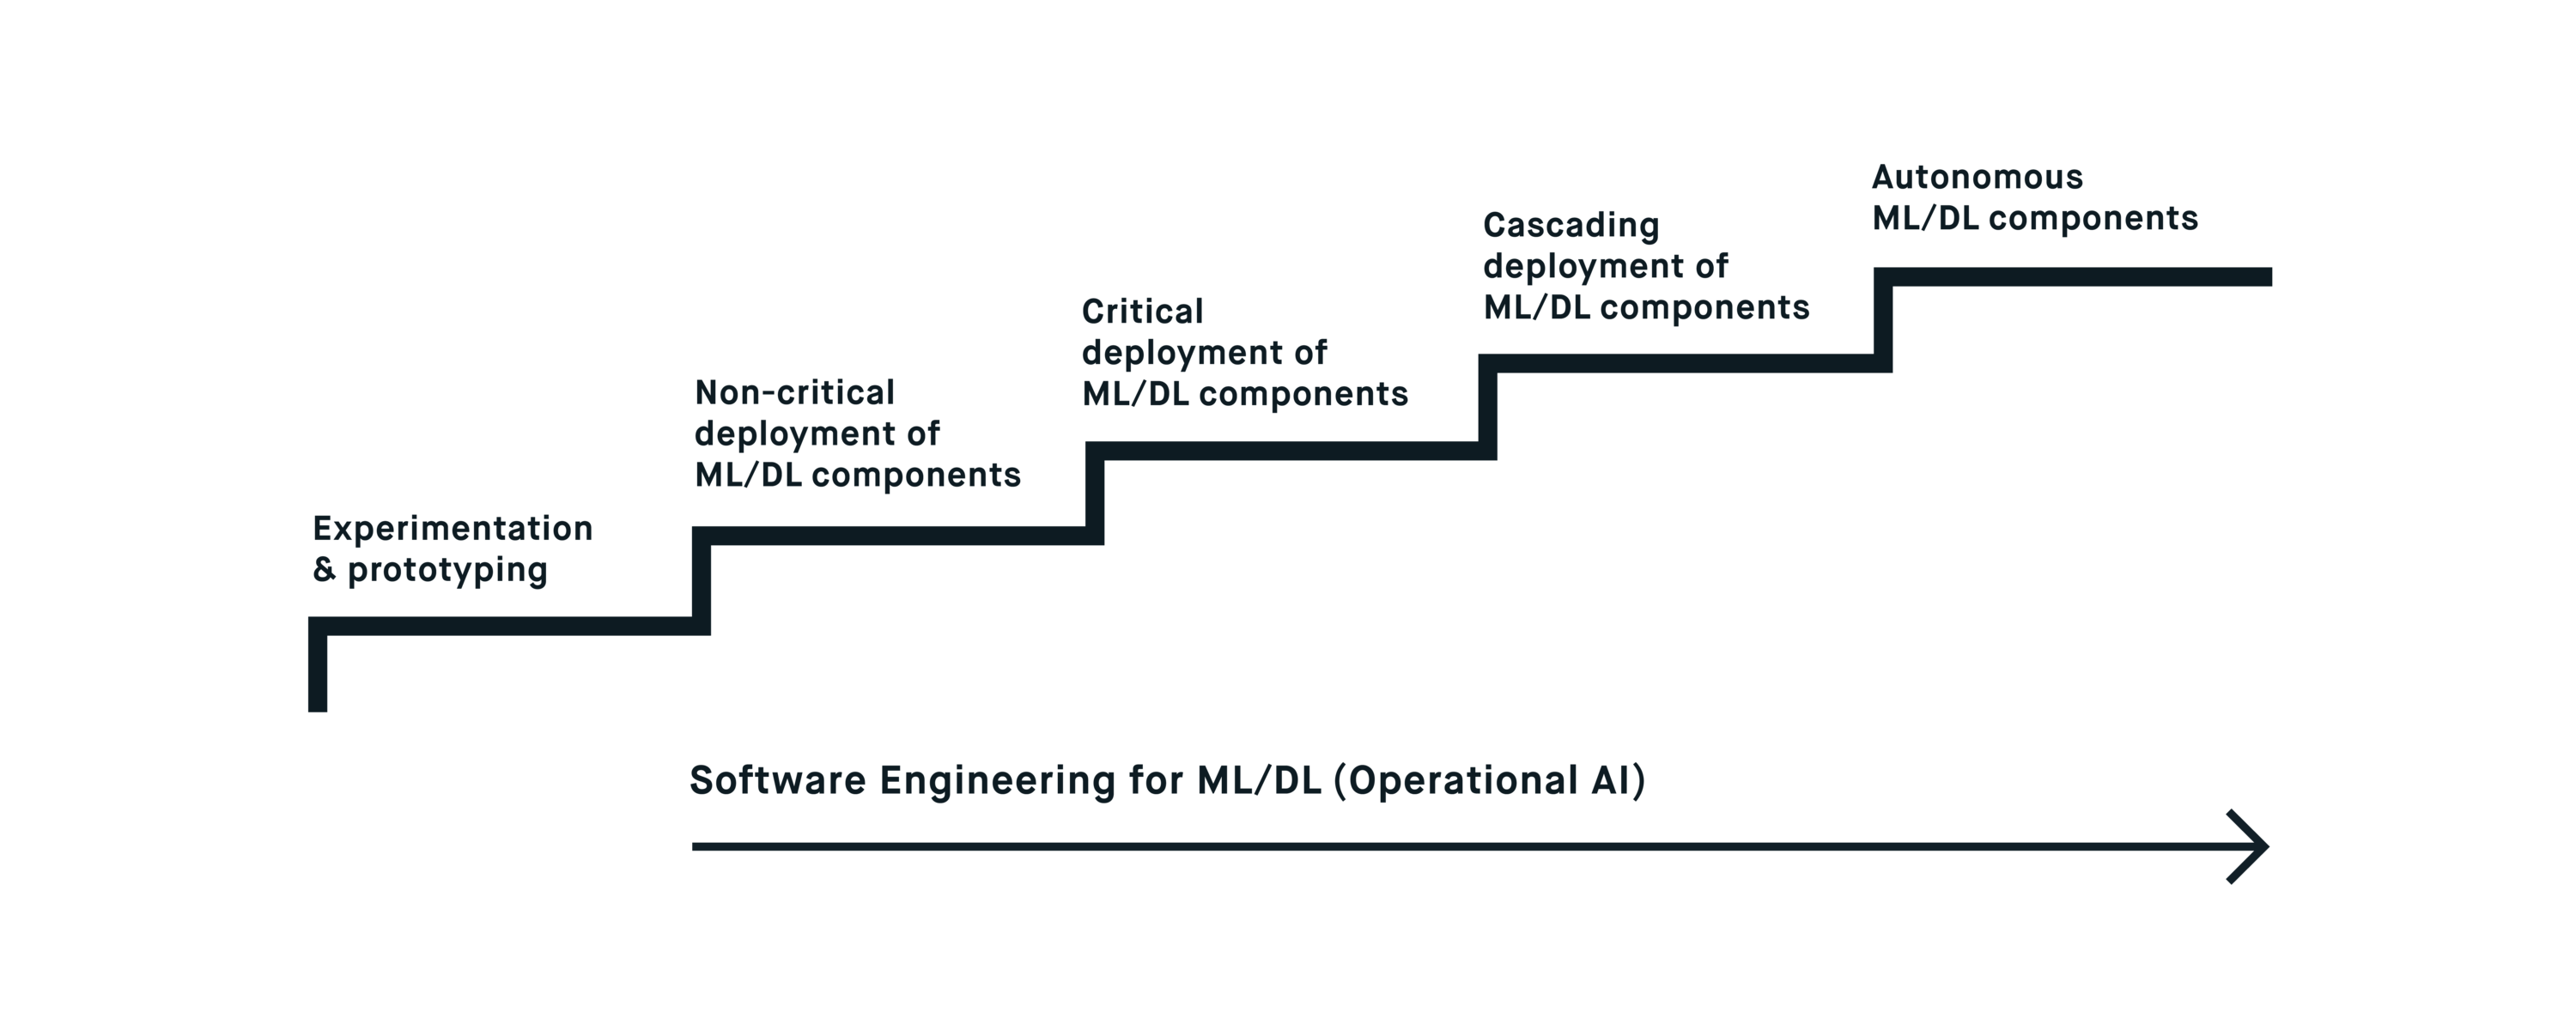 Dl Naar Ml Machine And Deep Learning Experimentation Stage